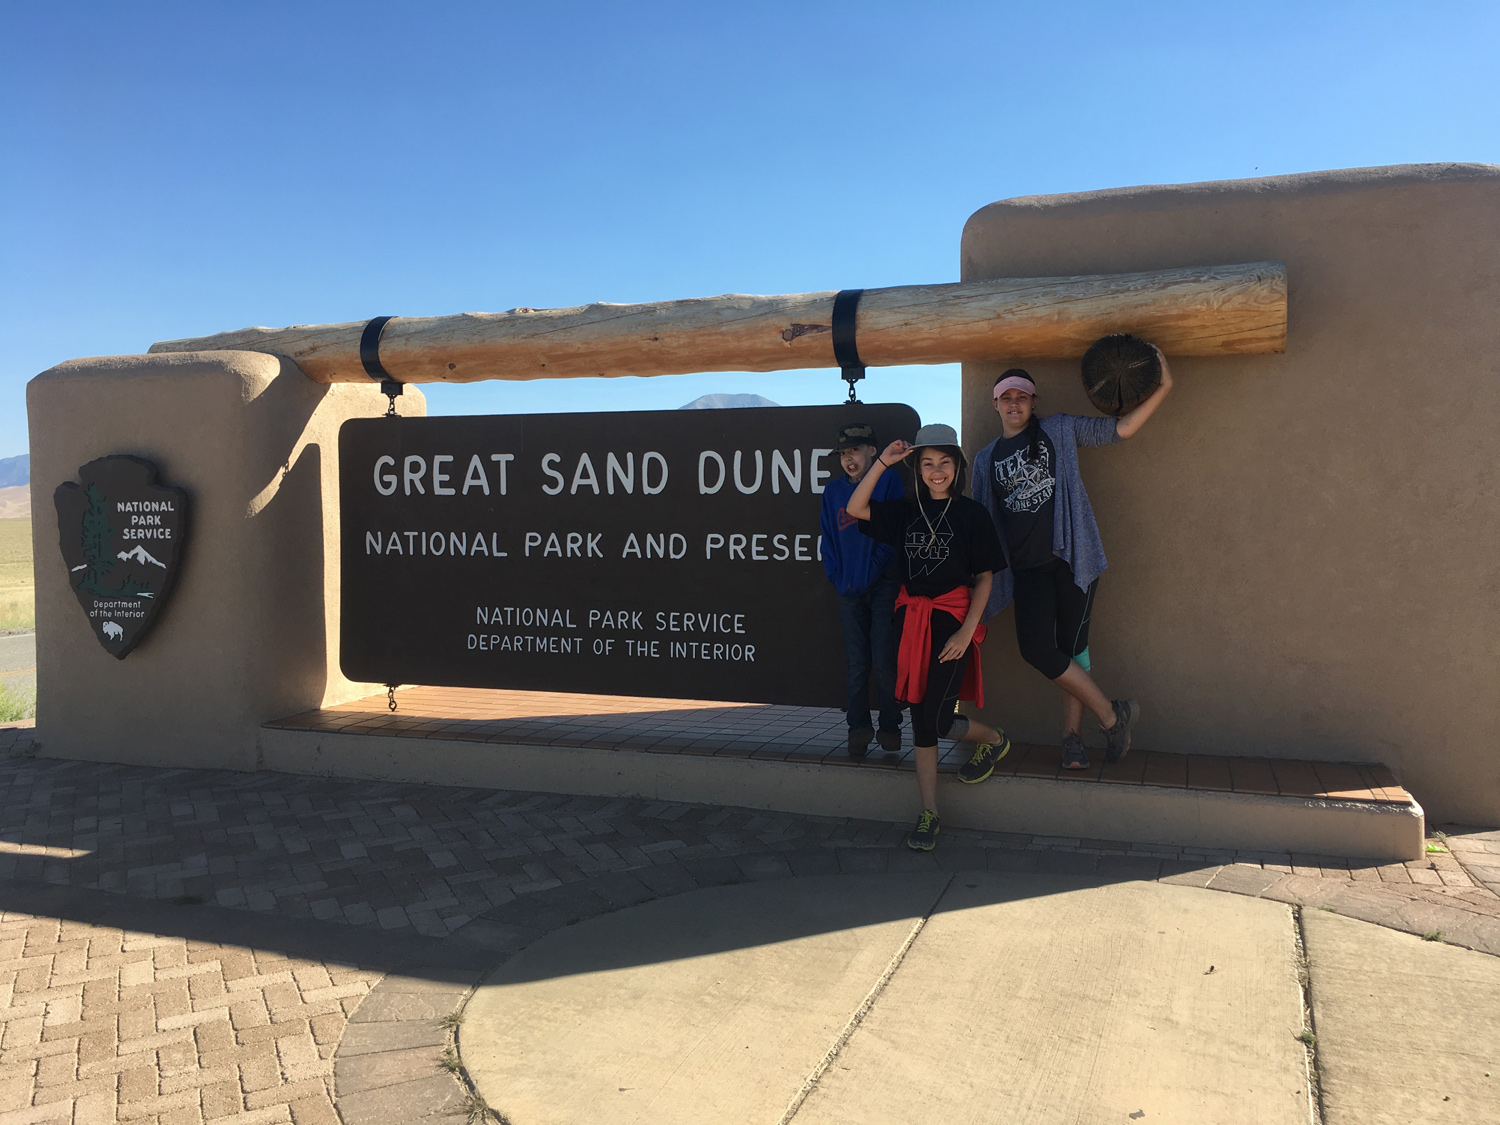 We had a blast climbing the dunes and then sledding back down.